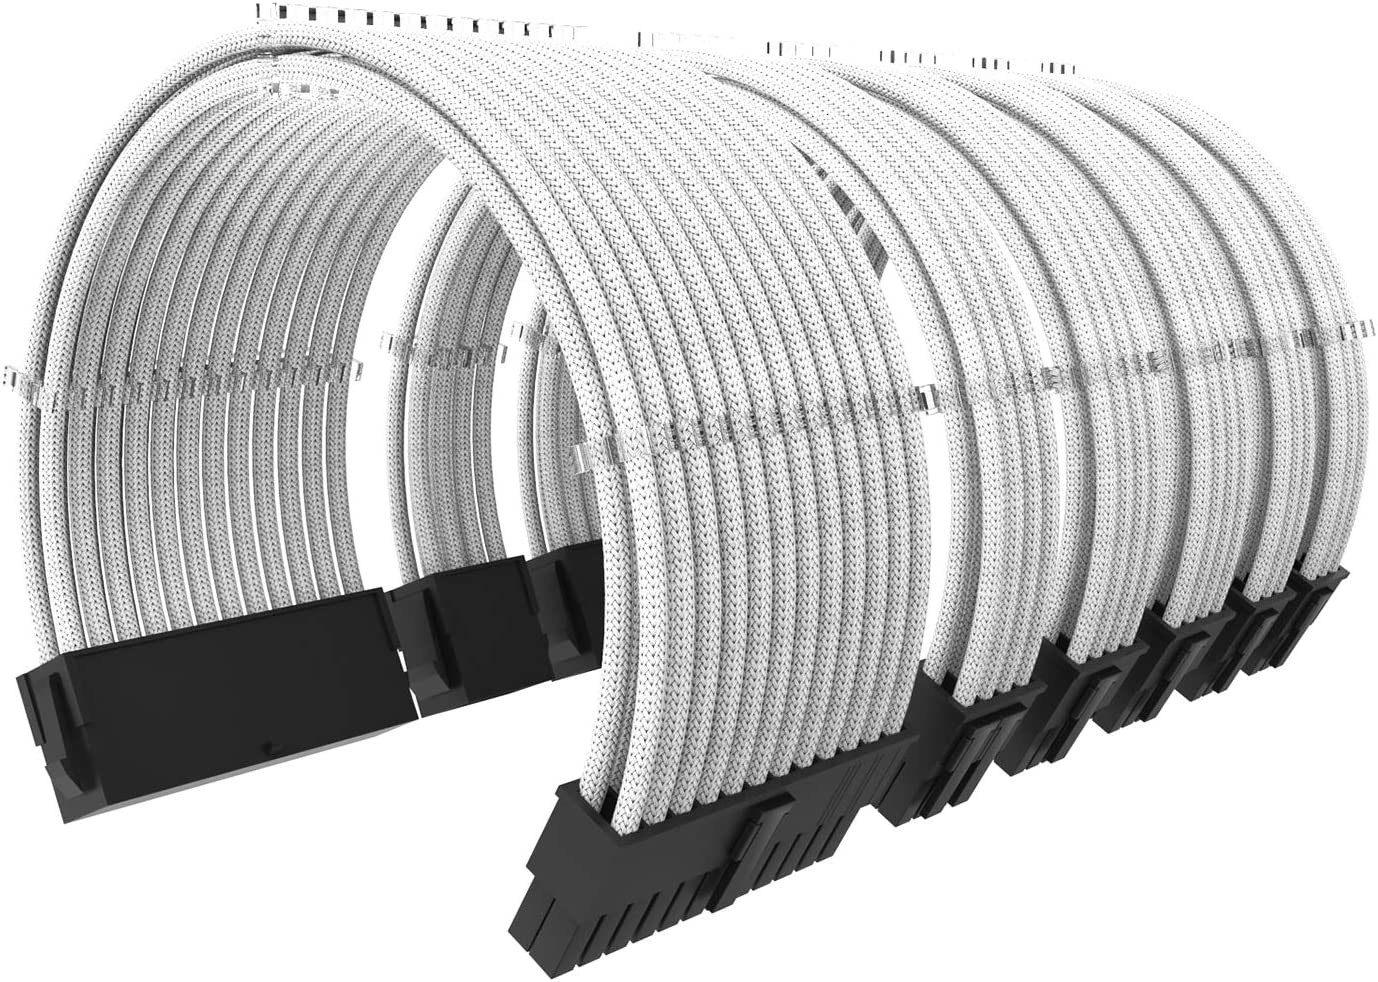 PSU Extension Cable Kit 11 4/5 inch Length with Cable Combs Extension Power Supply Cable Kit 24-pin 8-pin 6-pin for ATX Power Supply White